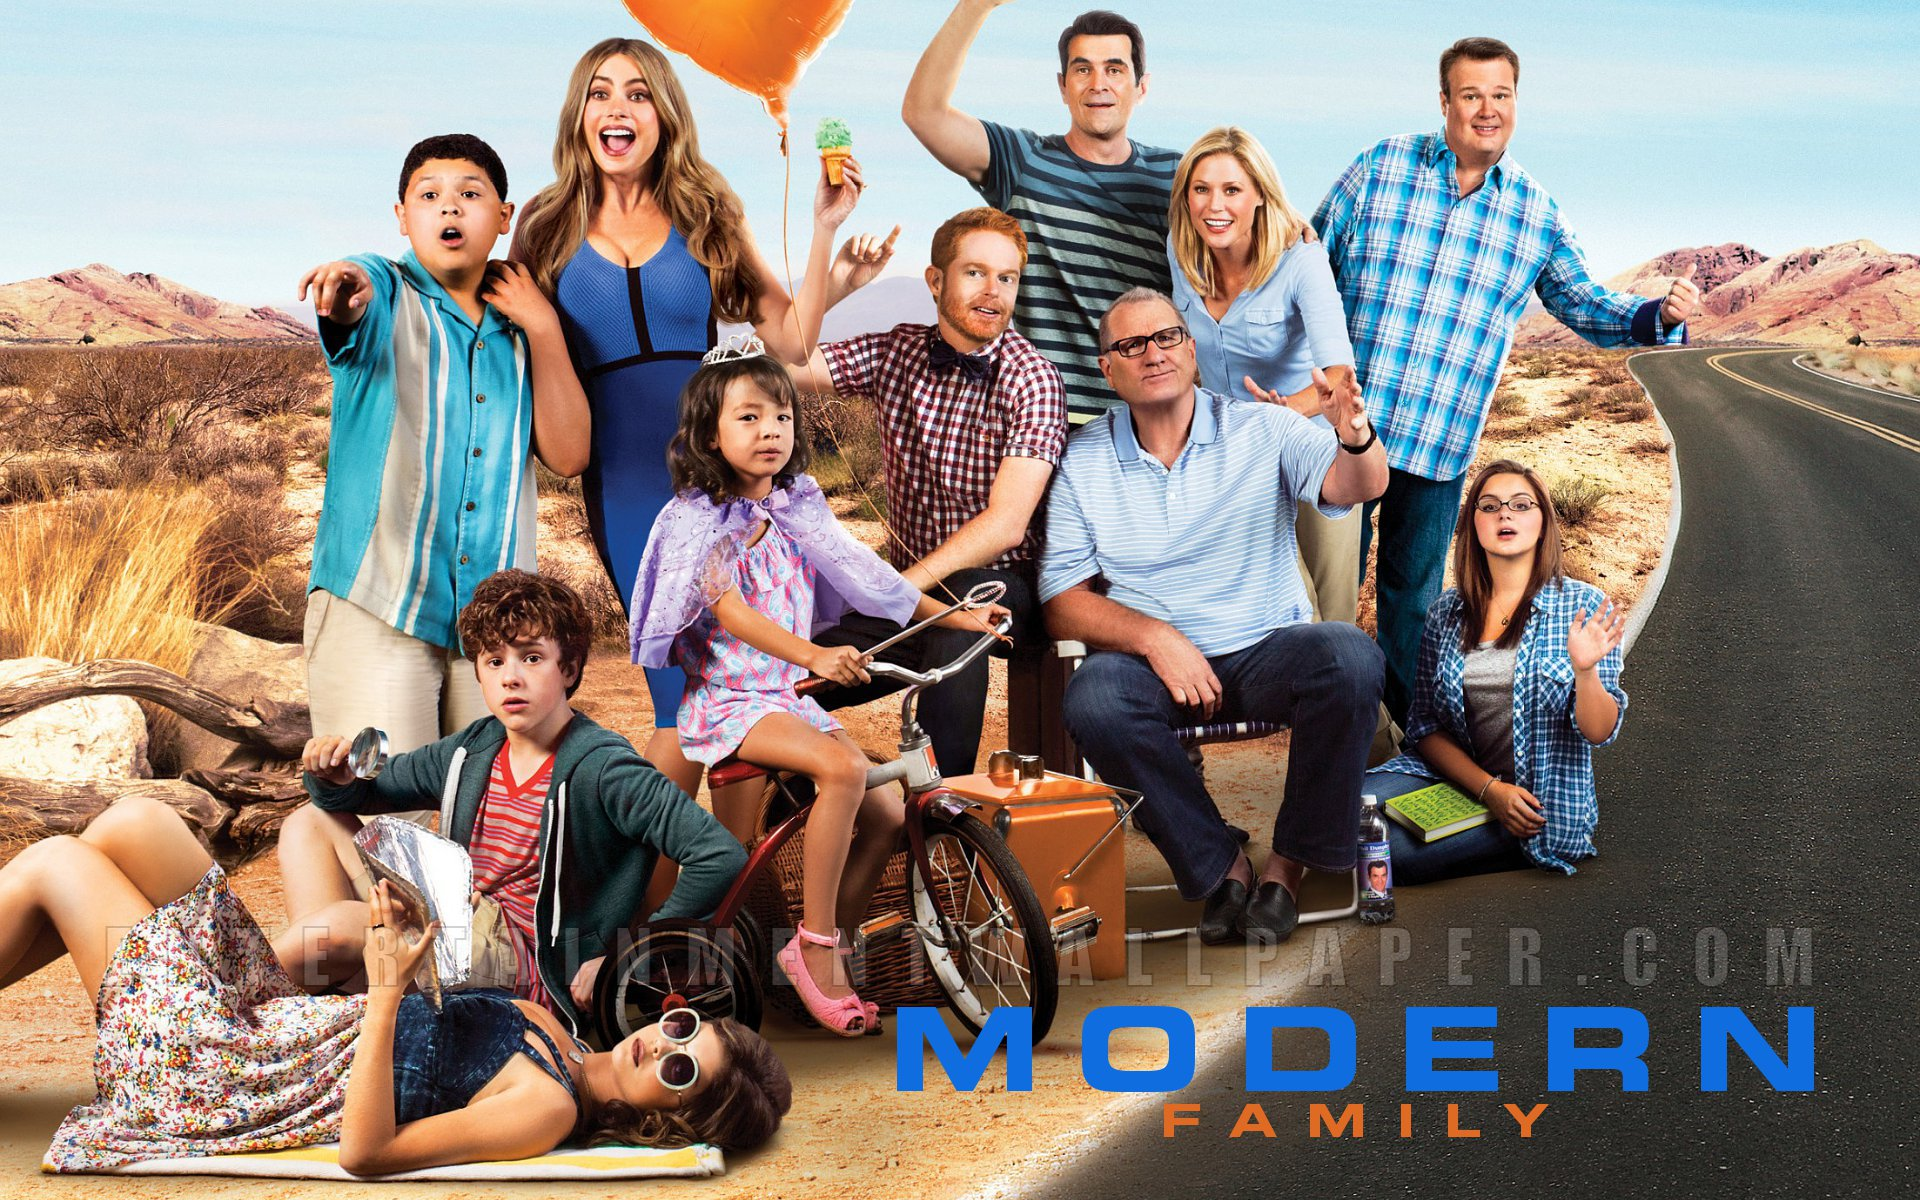 modern family wallpaper photo - photo #30